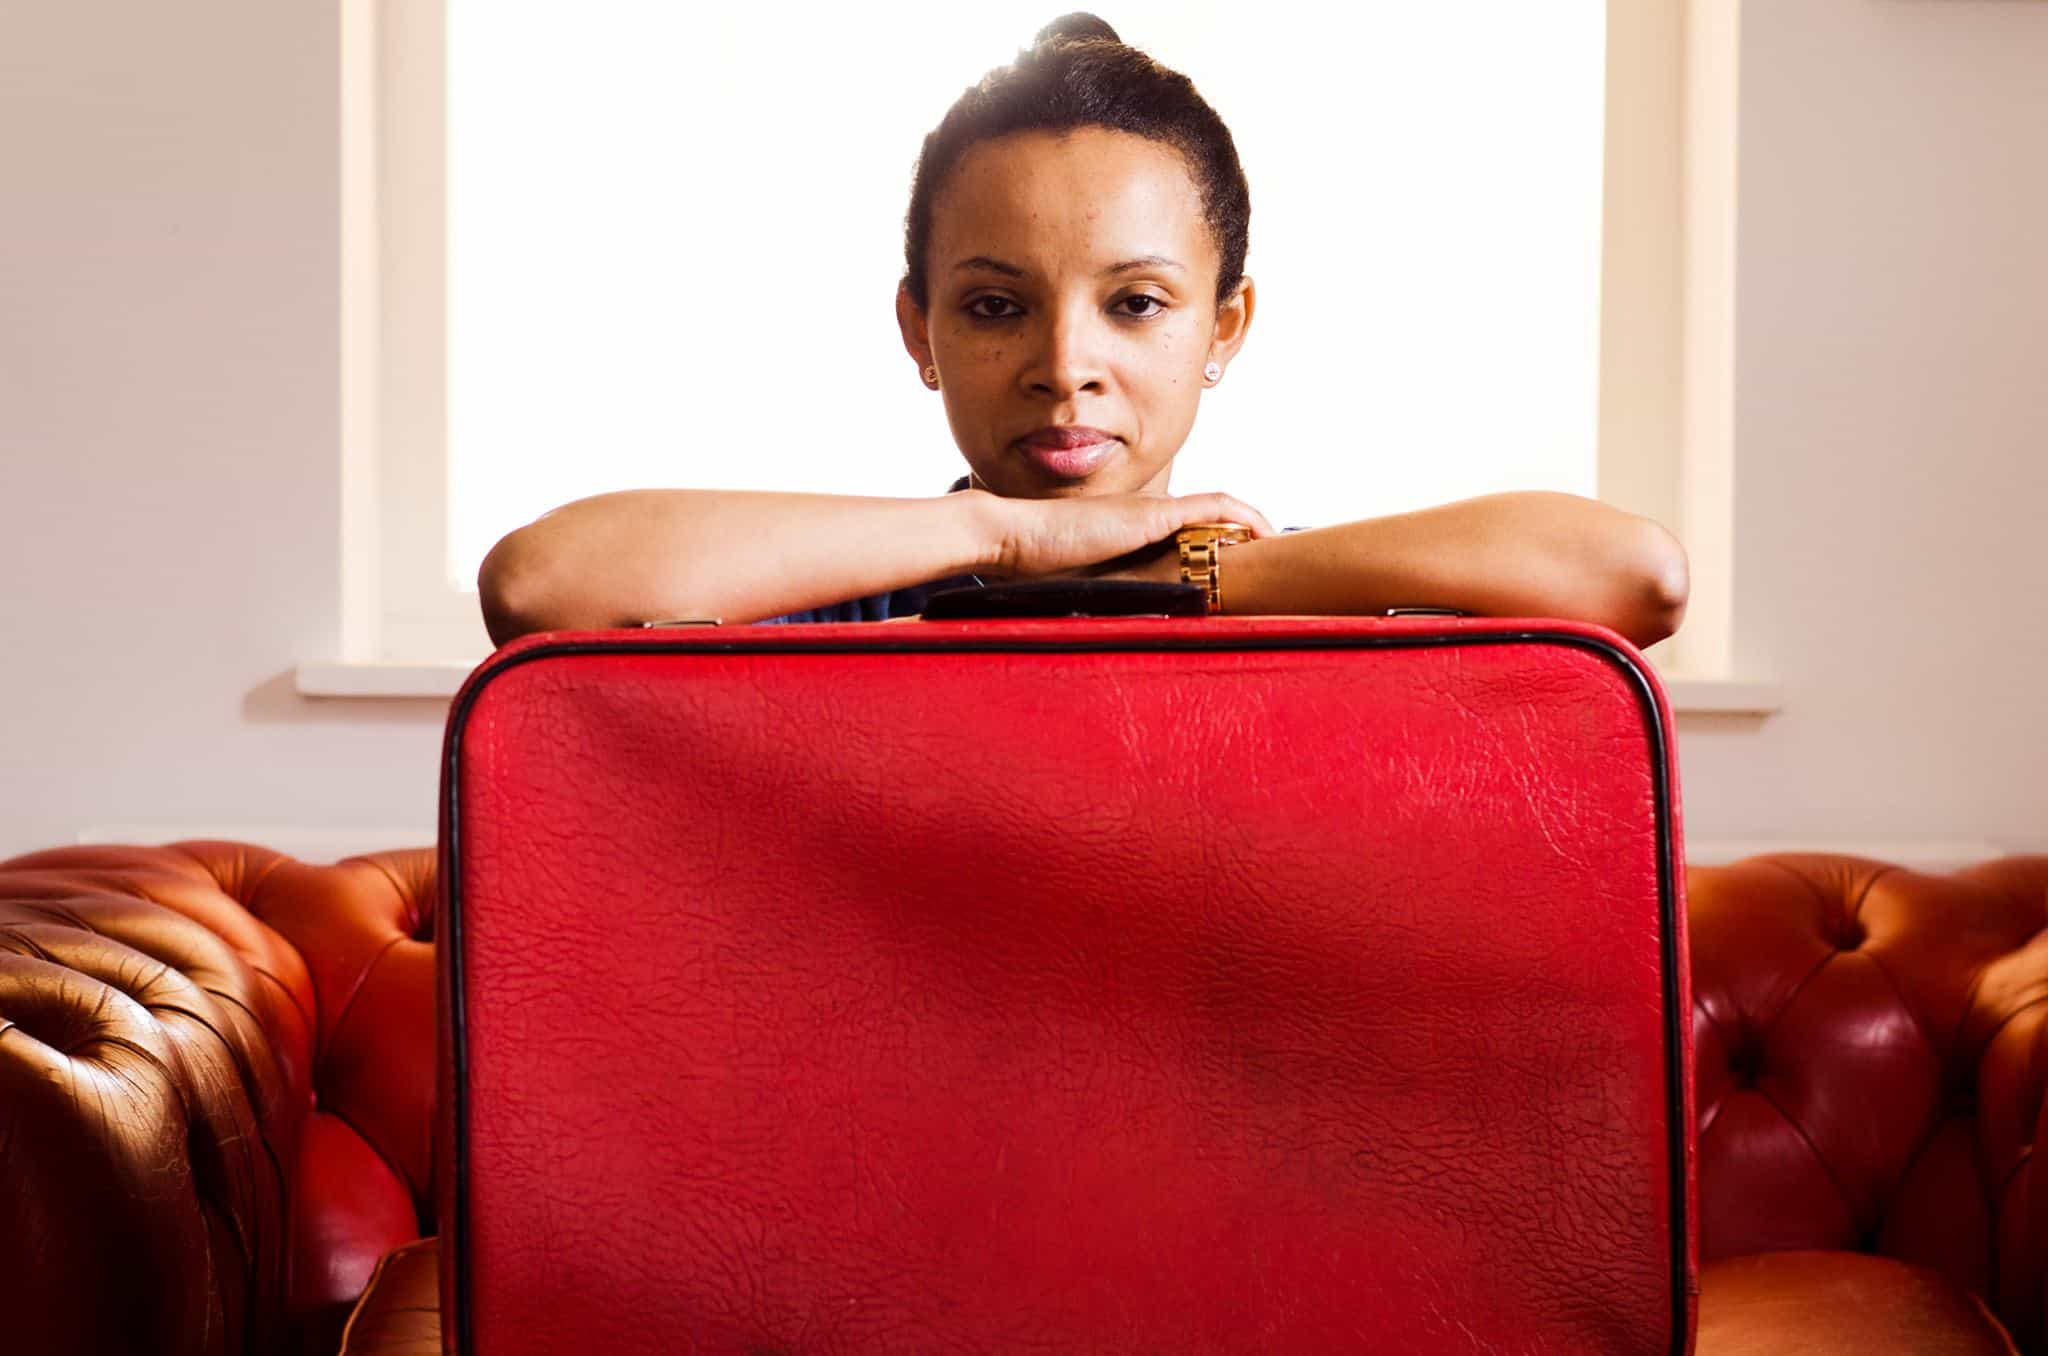 Stuck In A Toxic Relationship? Q&A With Baggage Reclaim's Natalie Lue